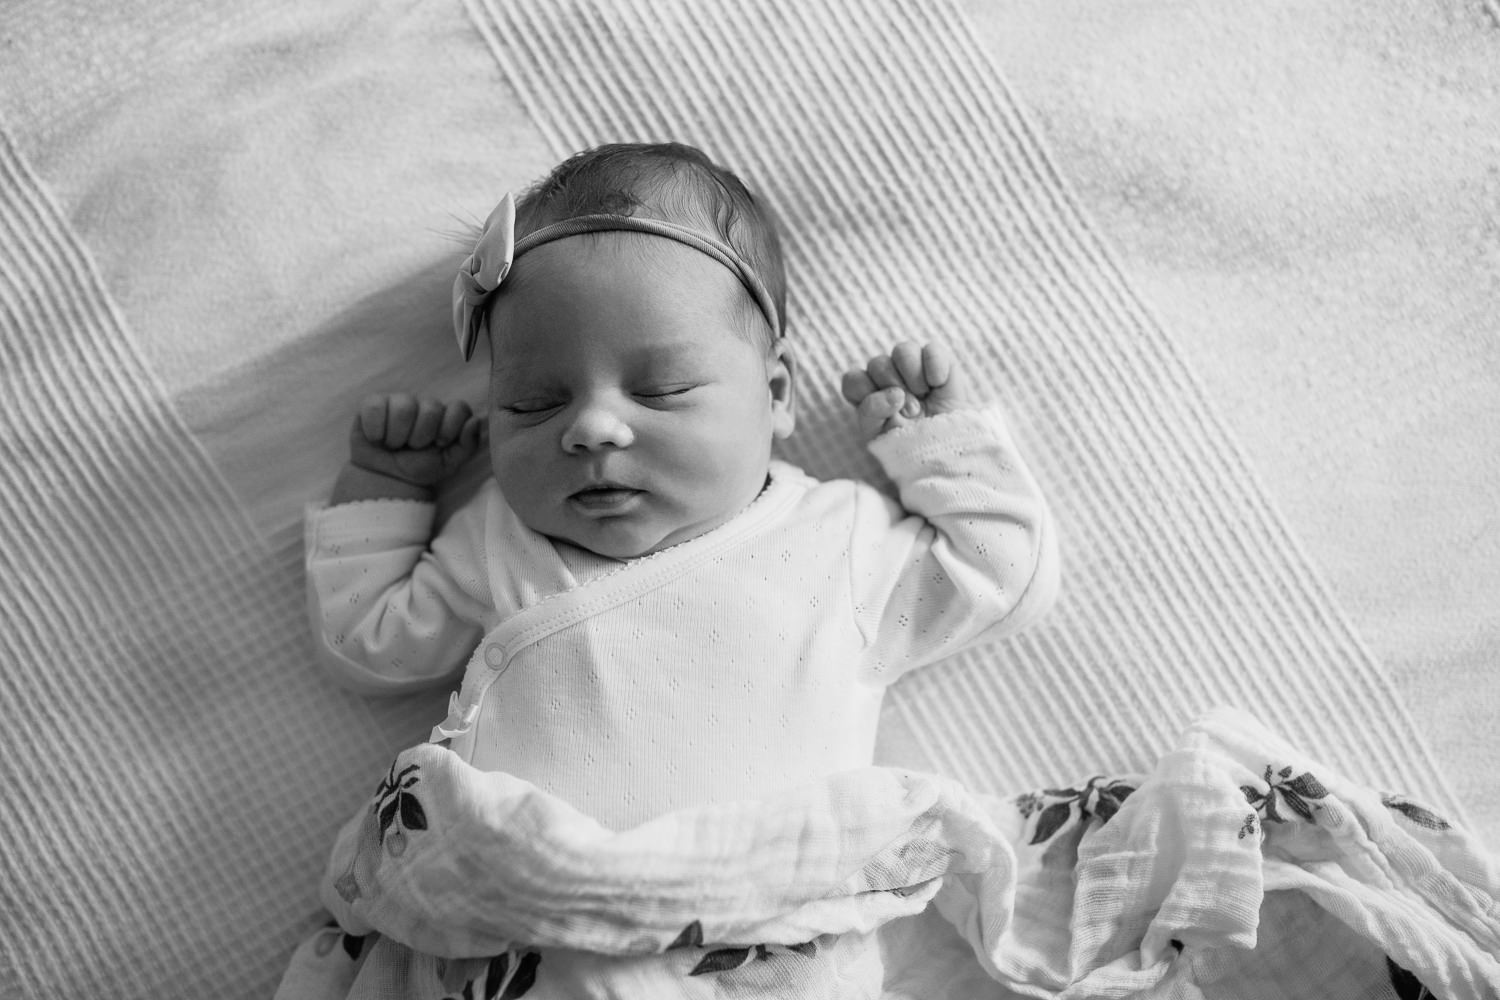 2 week old baby girl with dark hair in white onesie lying on swaddle, wearing bow headband asleep on bed, hands near face - York Region In-Home Photography